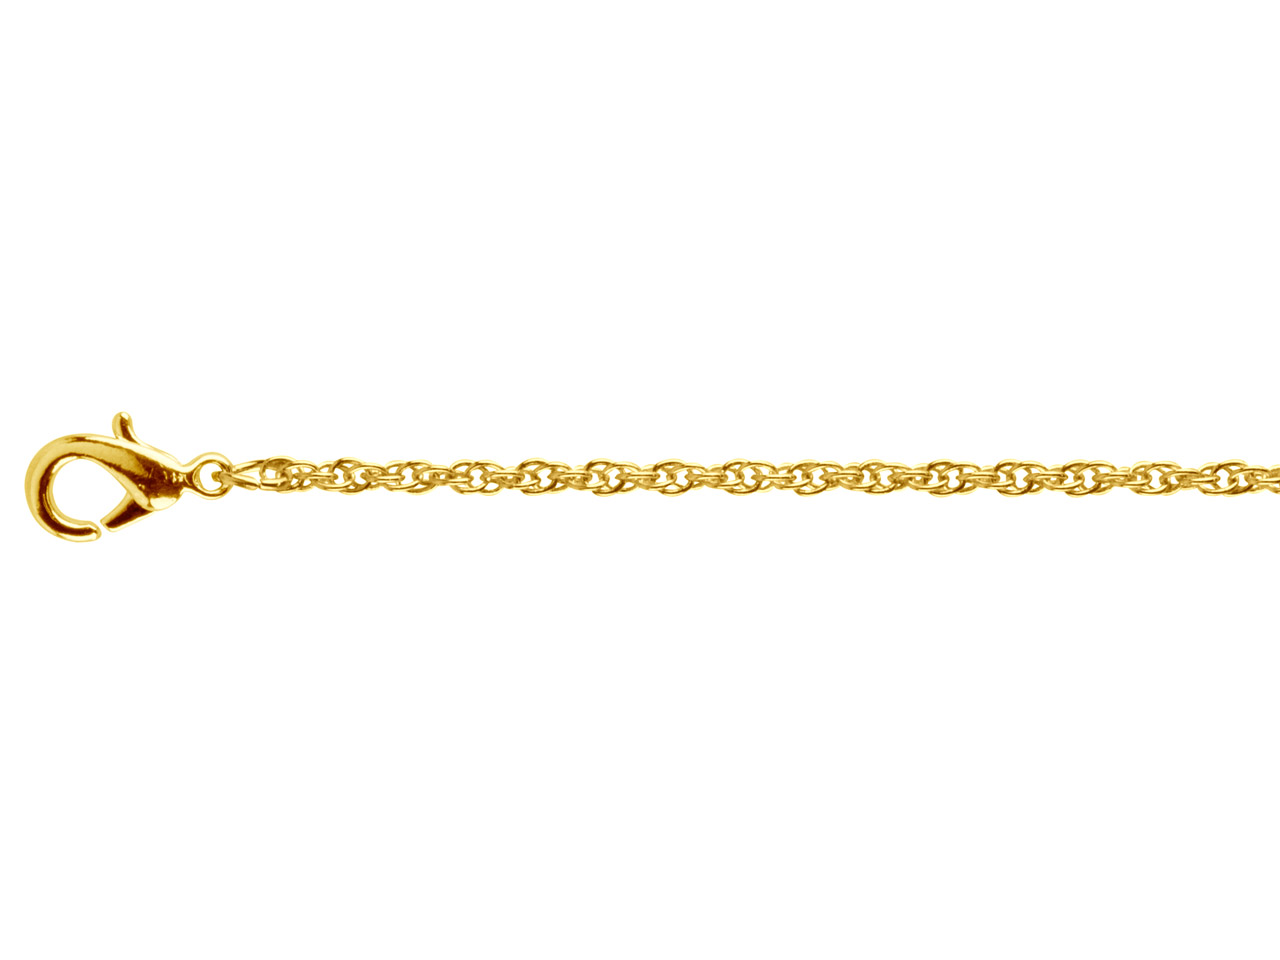 Gold Plated Rope 1.8mm 16